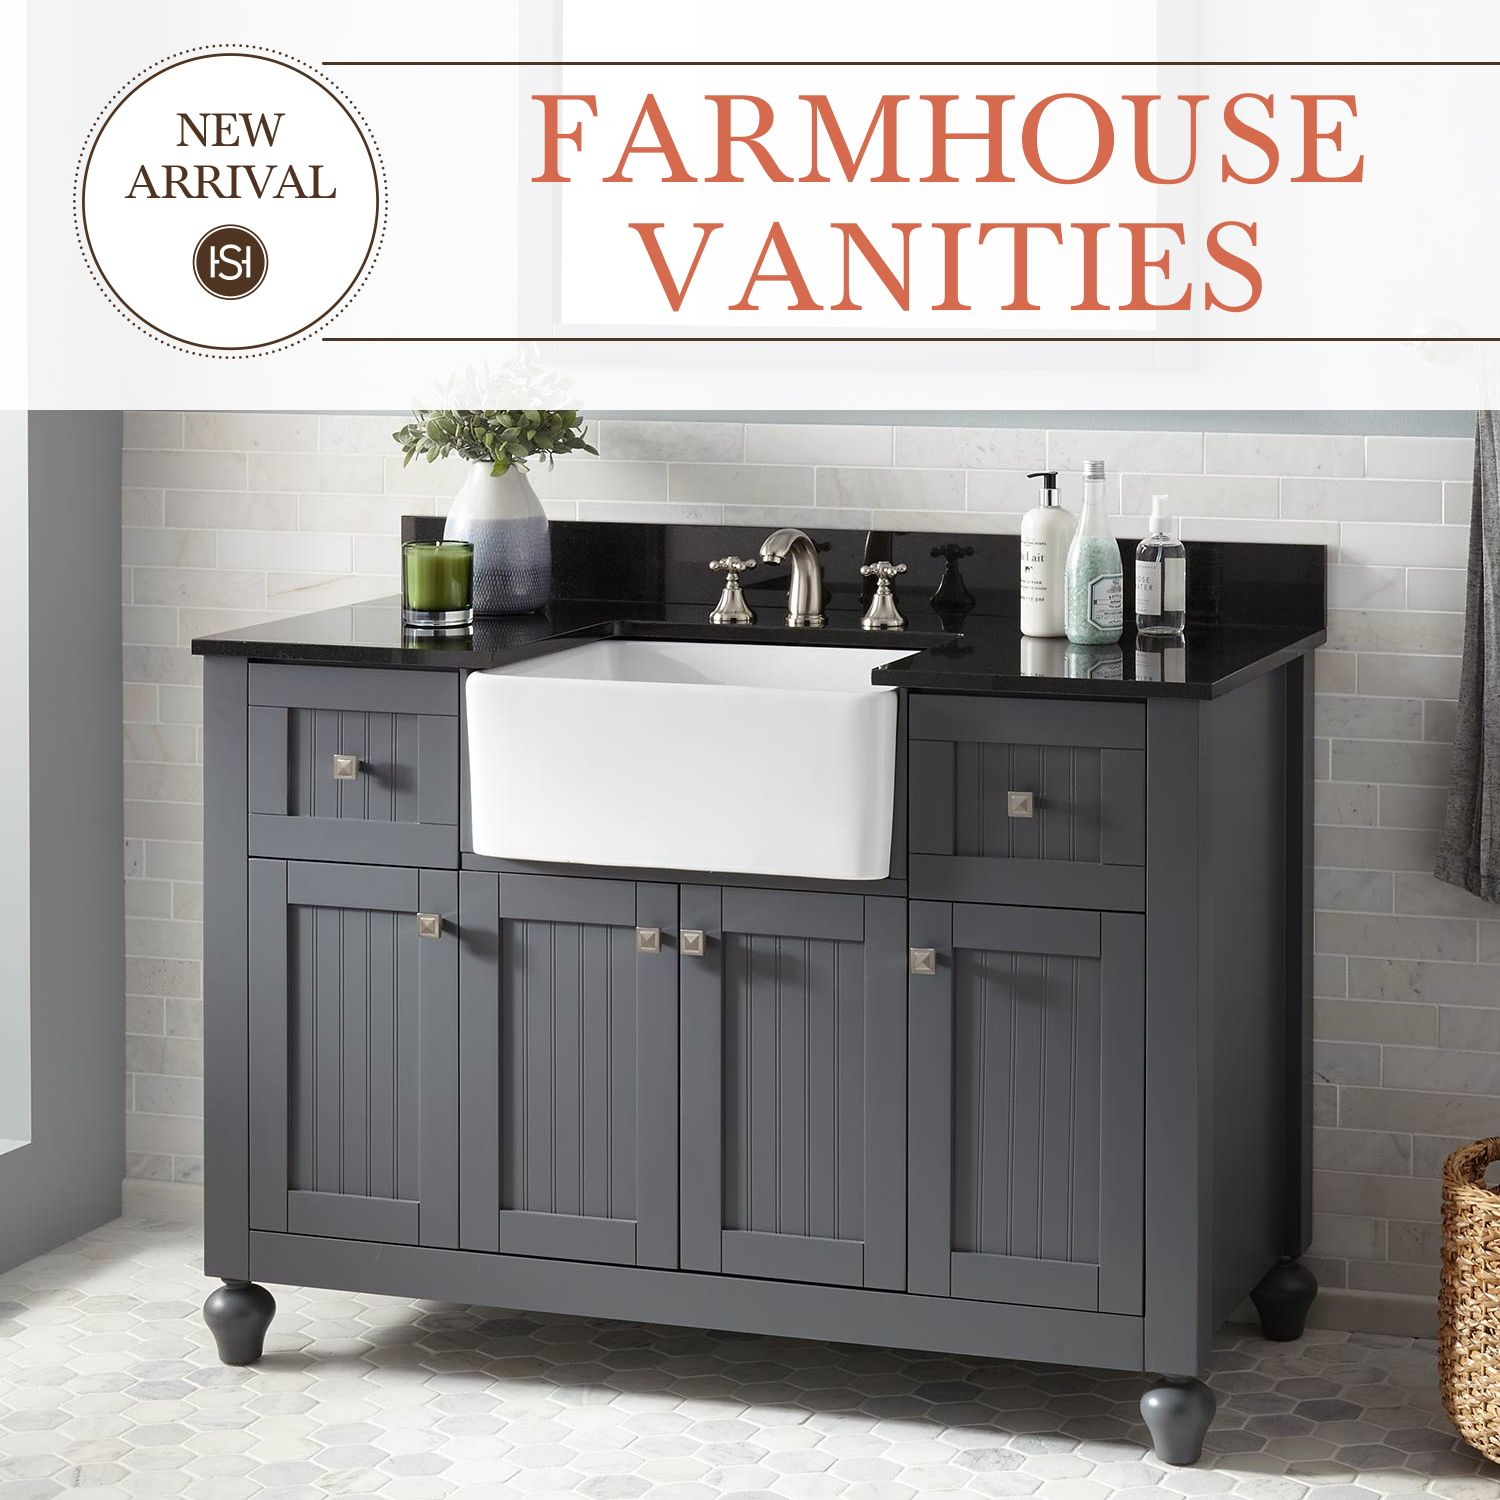 5 Tips On Buying Farmhouse Sink With Images Farmhouse Bathroom Sink Farmhouse Sink Vanity Farmhouse Sink Kitchen